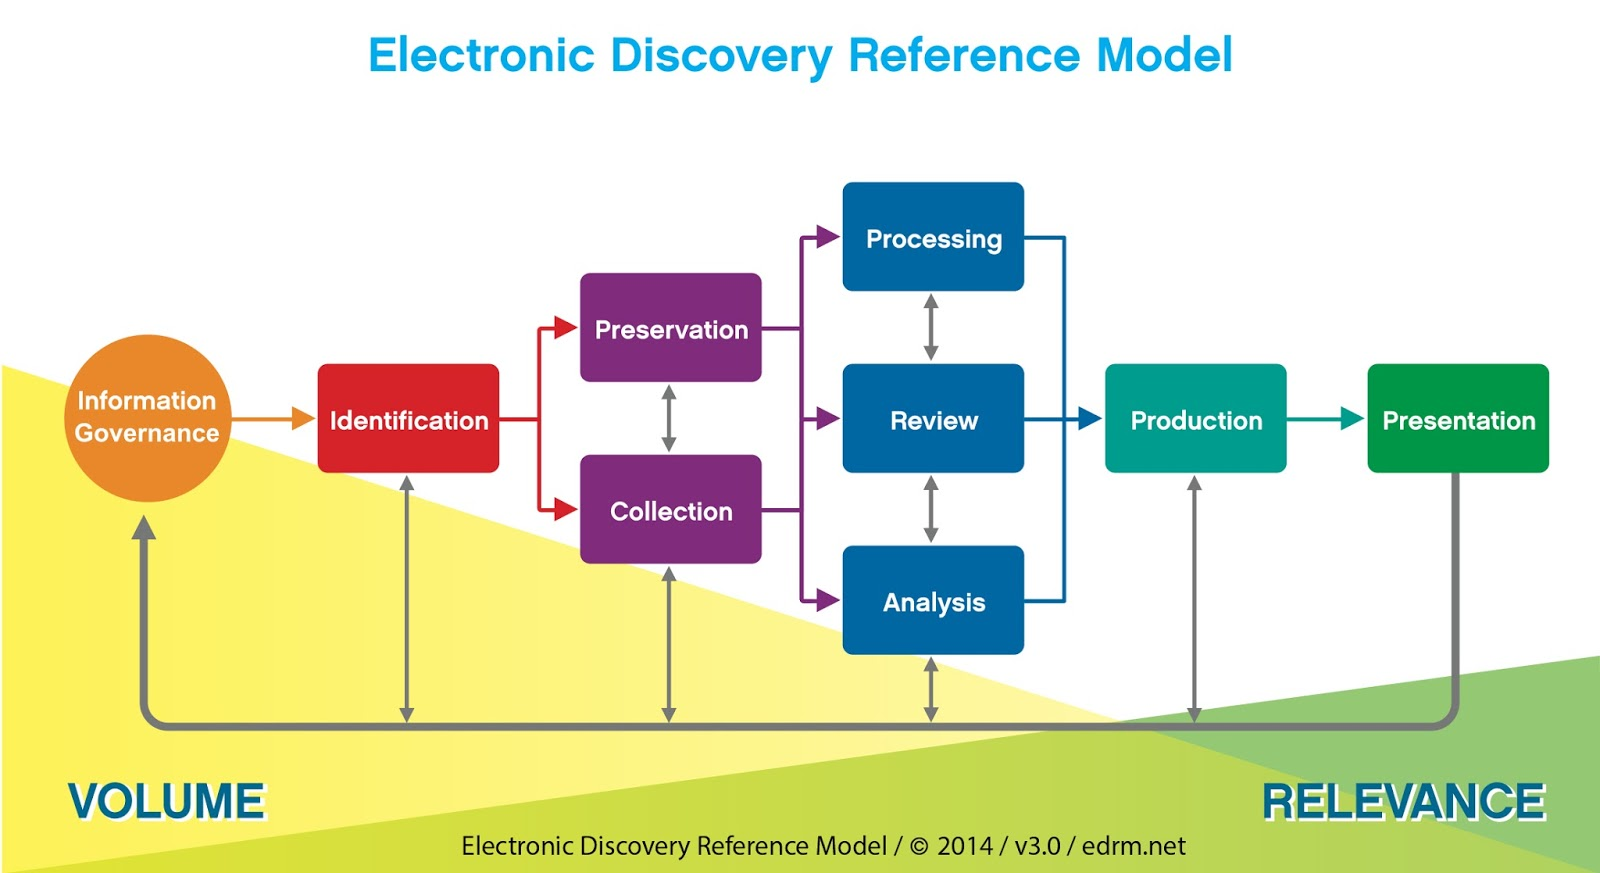 Electonic Discovery Reference Model is showing by a graphic. SYSTRAN illustrates this string from information governance to presentation.